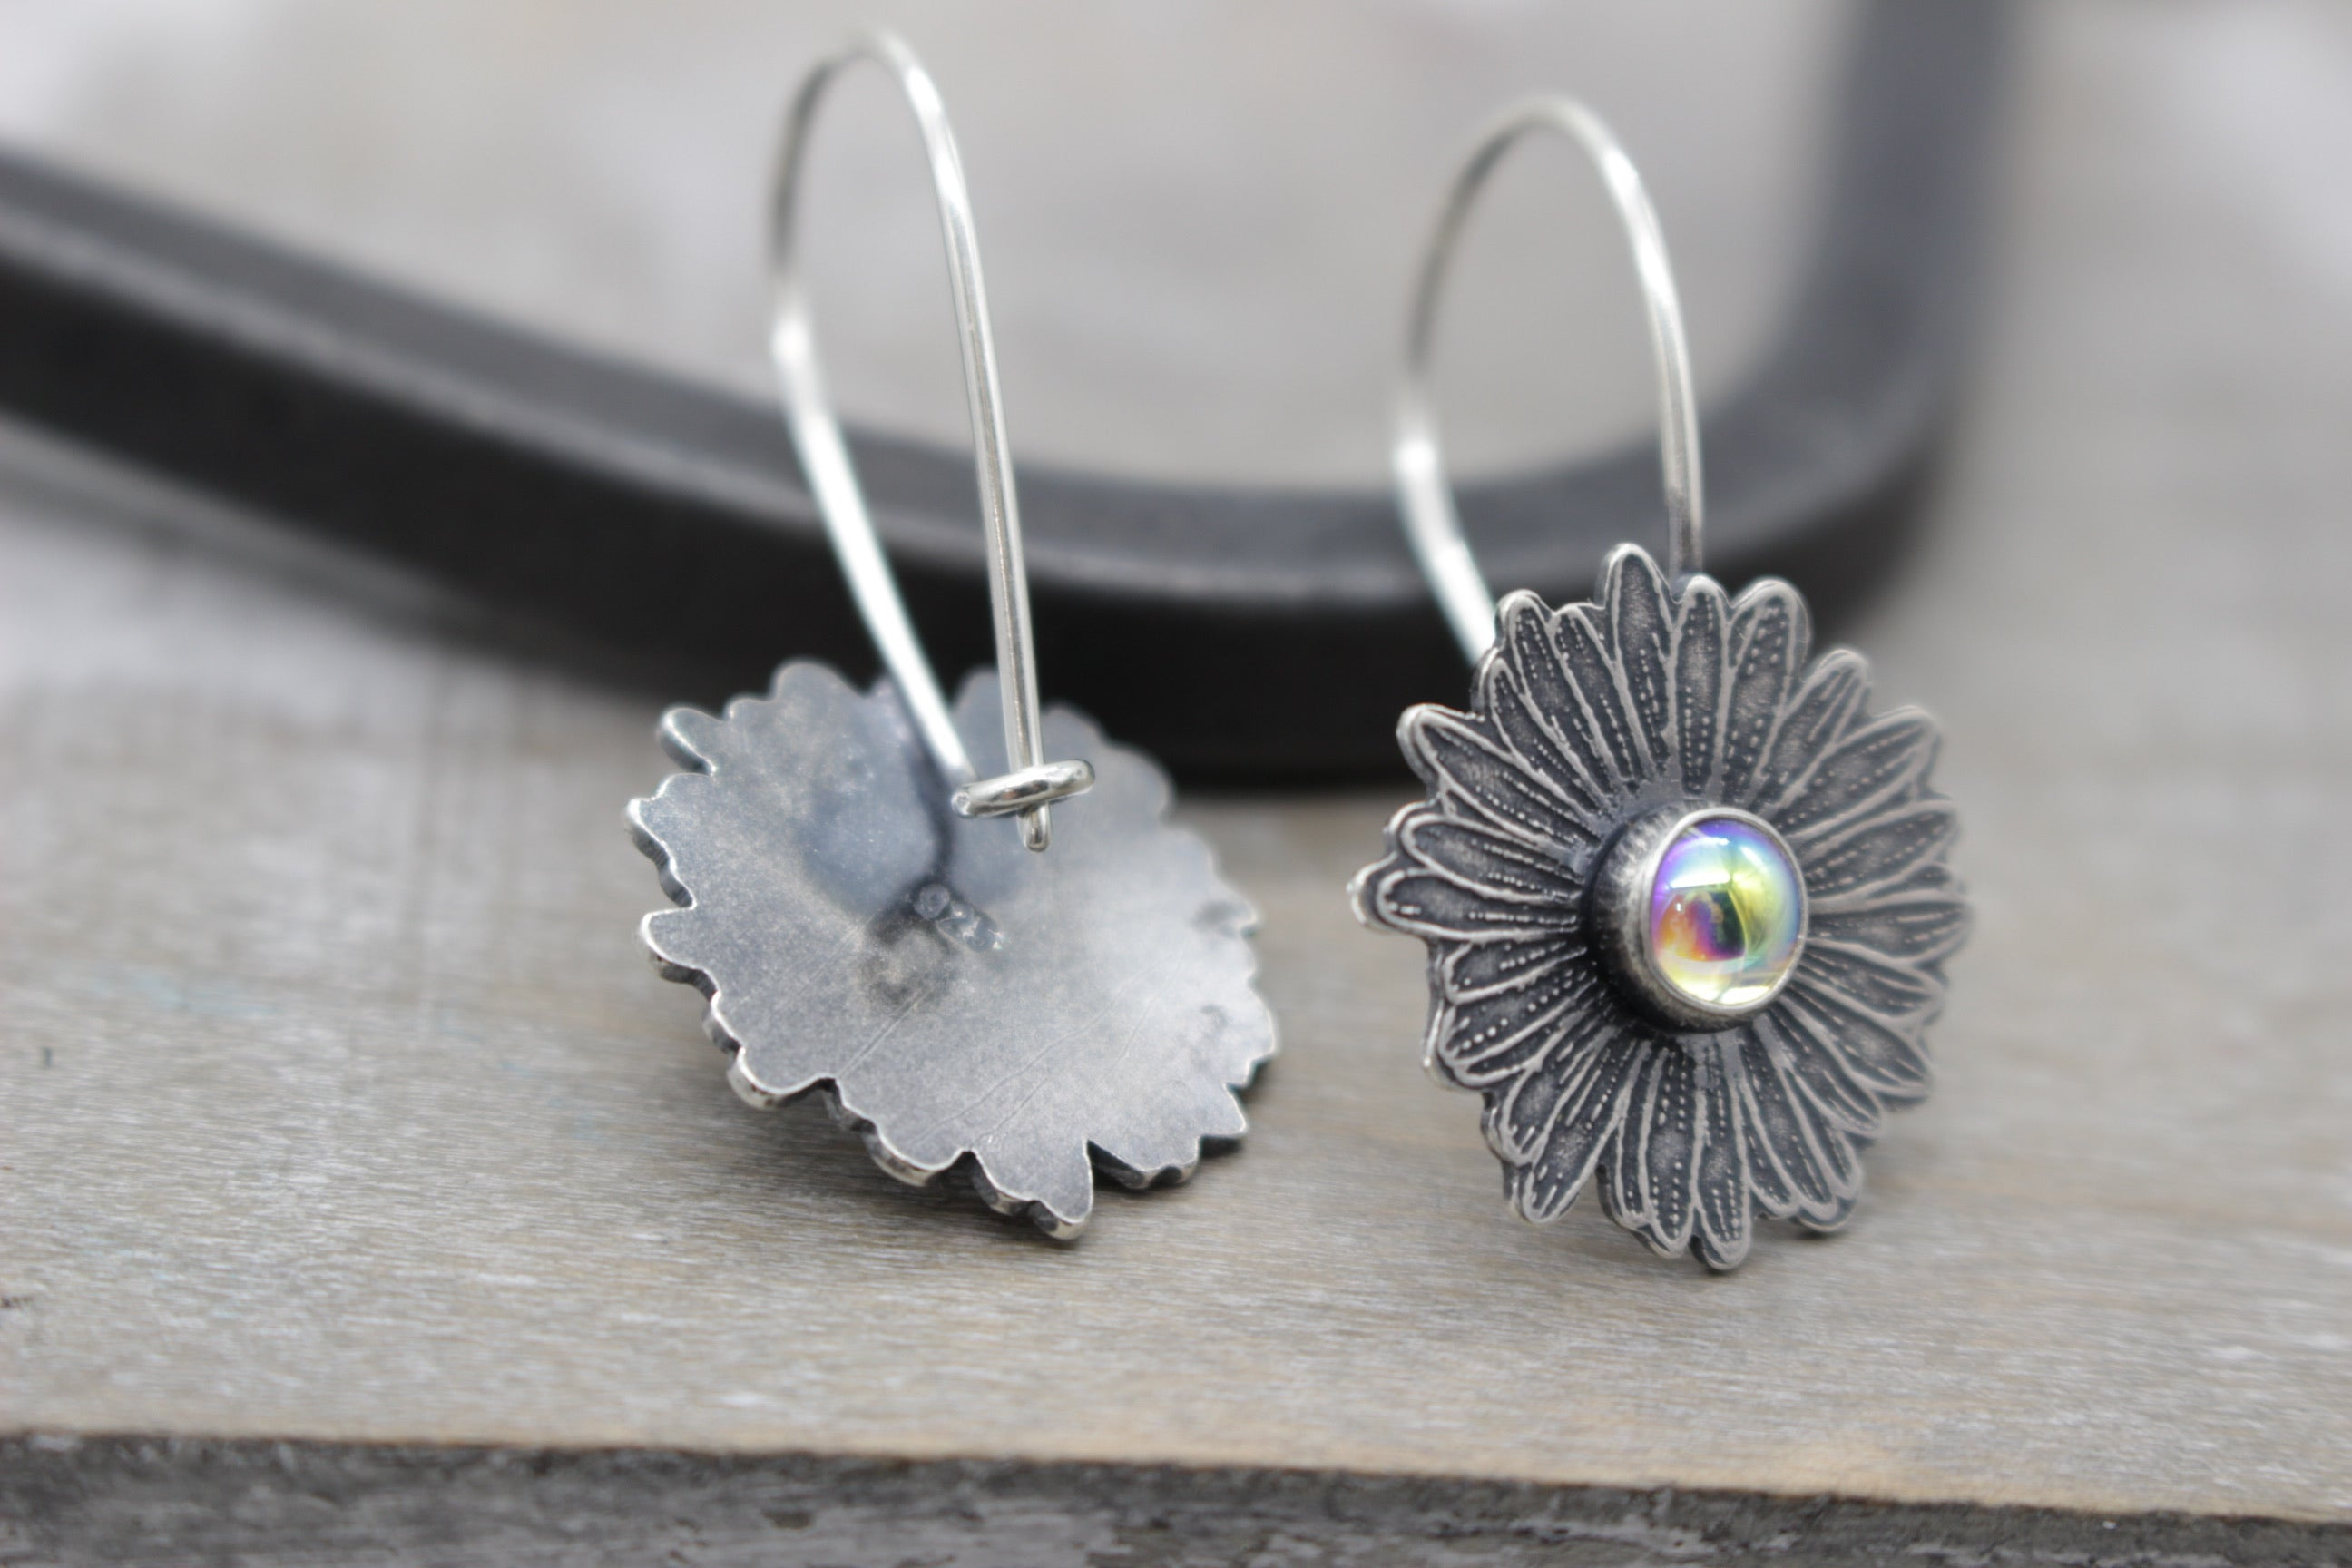 Clear aura borealis Sterling silver daisy earrings